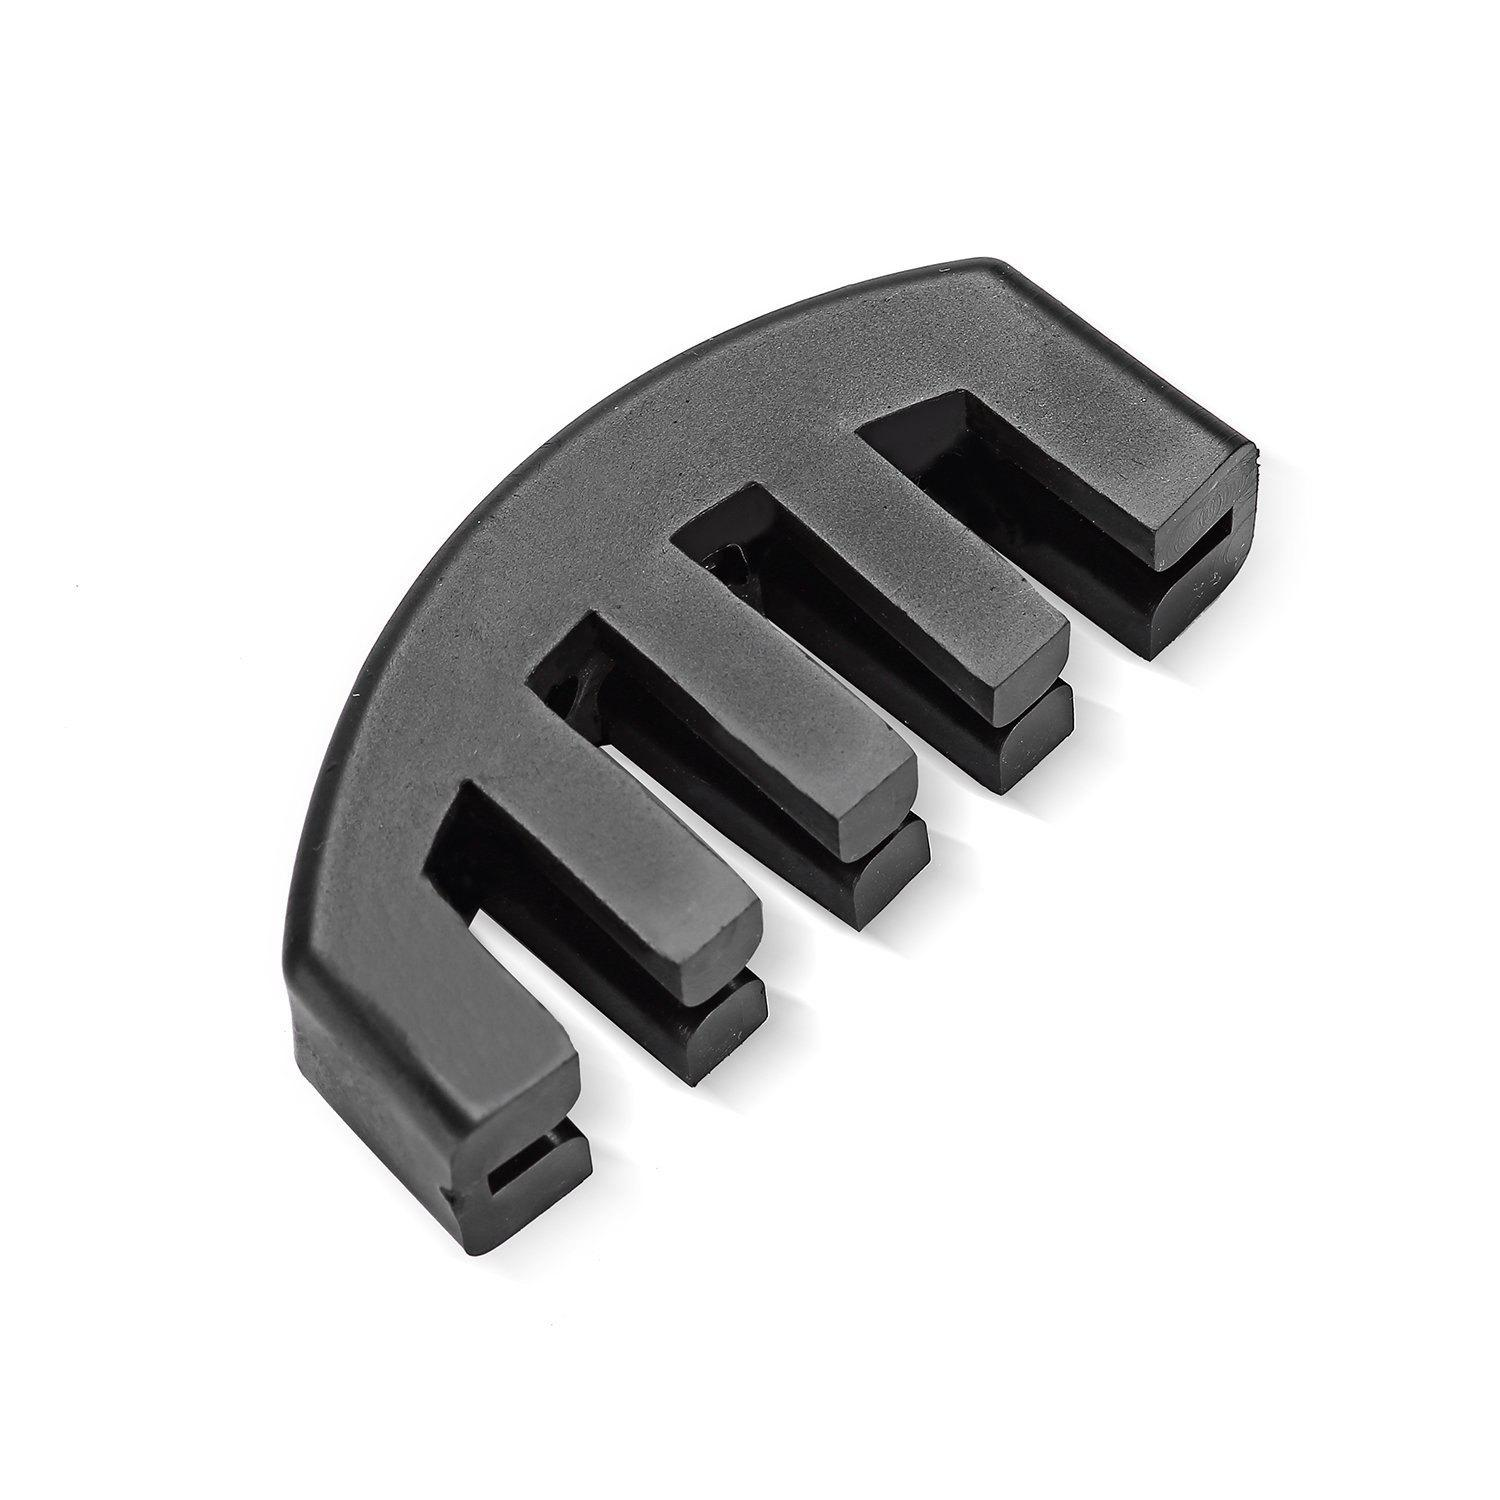 Rubber Mute with 5 Prongs for 4/4 and 3/4 Violin - BLACK